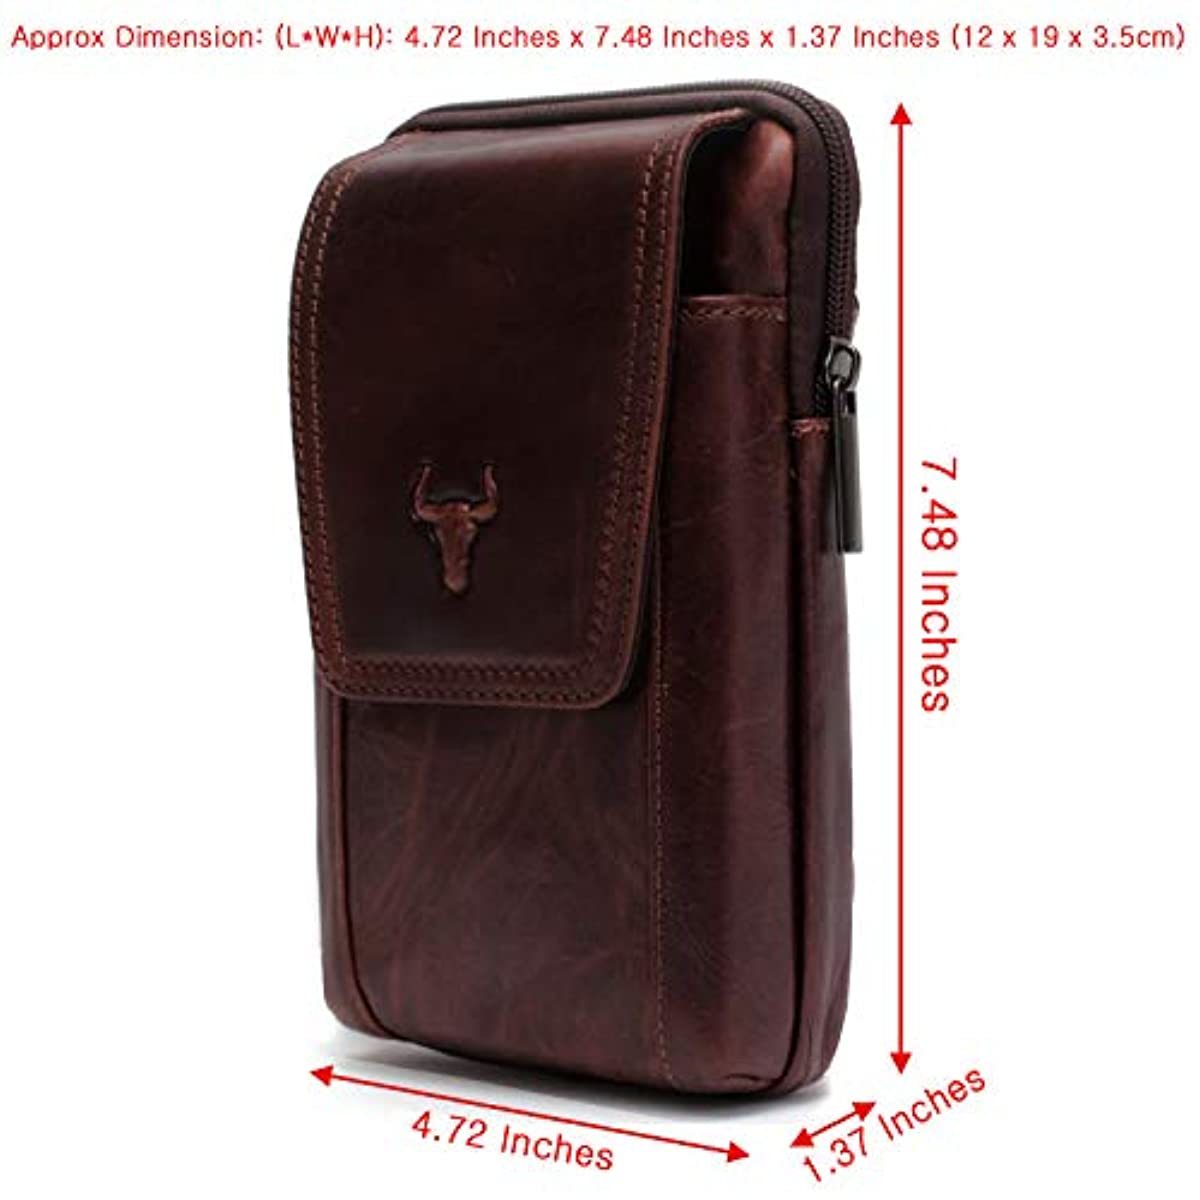 Waist Pack Messenger Bags Tactical Cellphone Phone Pouch Bum Leather Bag Travel Bags Cases Holsters Saddlebag 9265 - ENCACC